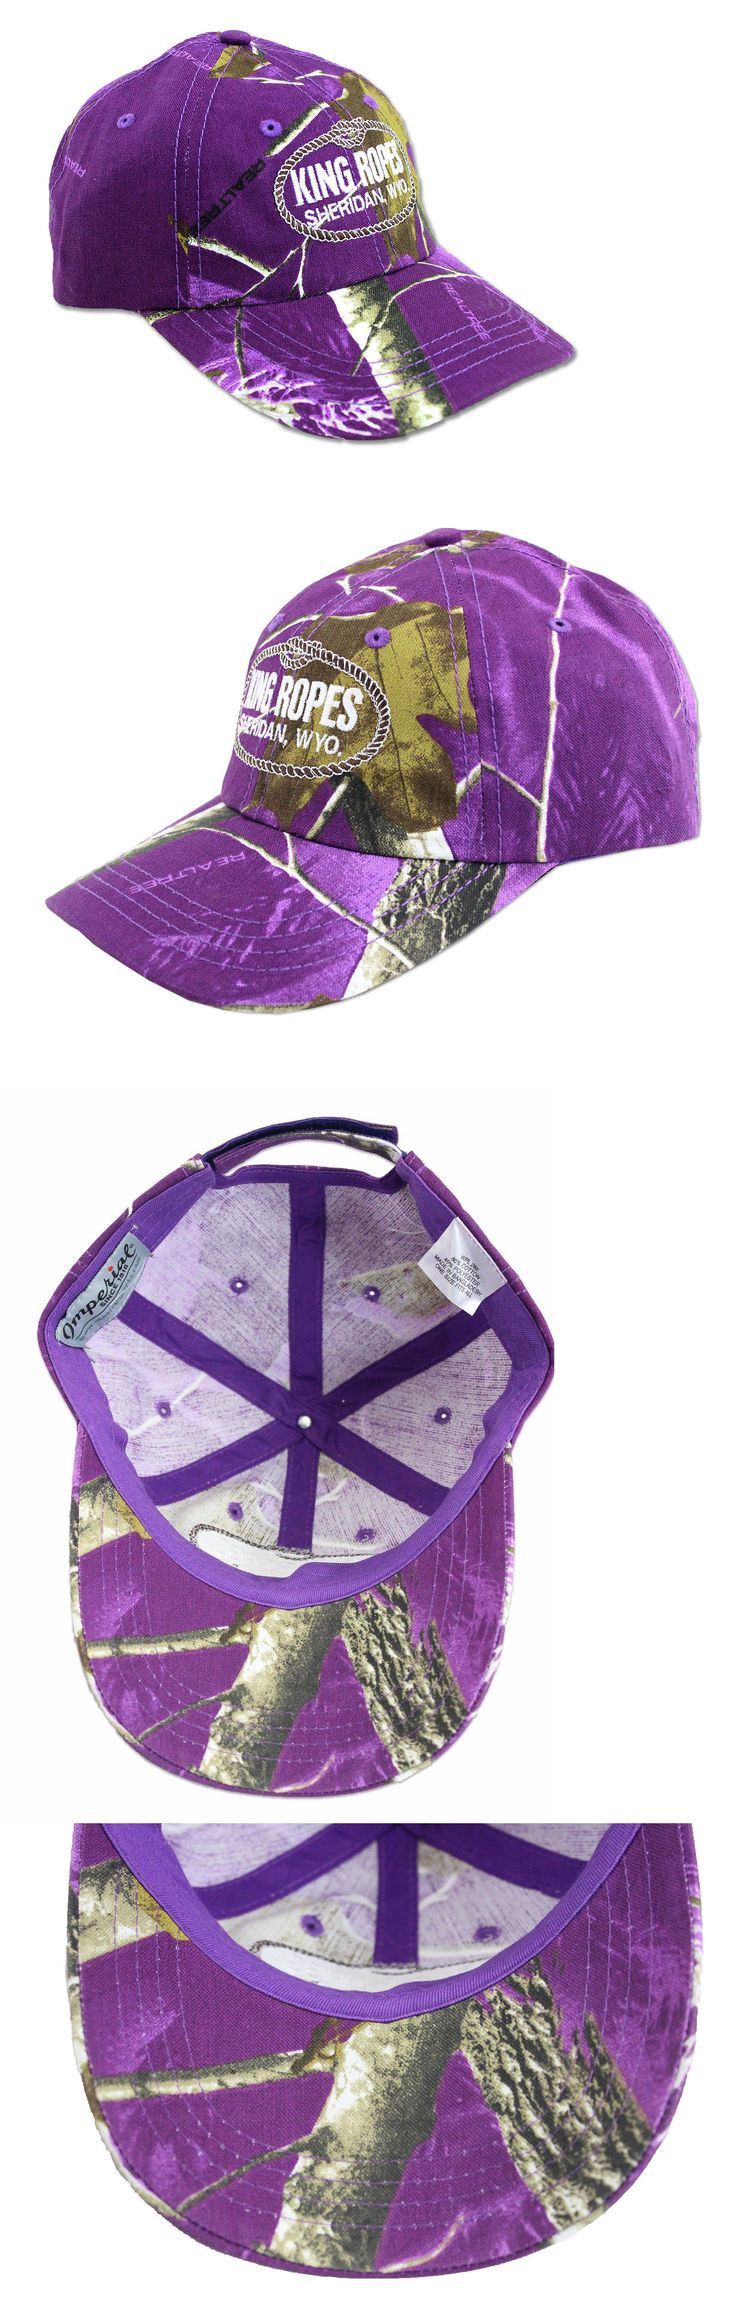 Riding Helmets 47269: King Ropes Rope Hat - Relaxed Low Profile Cap - Purple Camo ** Free Shipping ** -> BUY IT NOW ONLY: $32.99 on eBay!